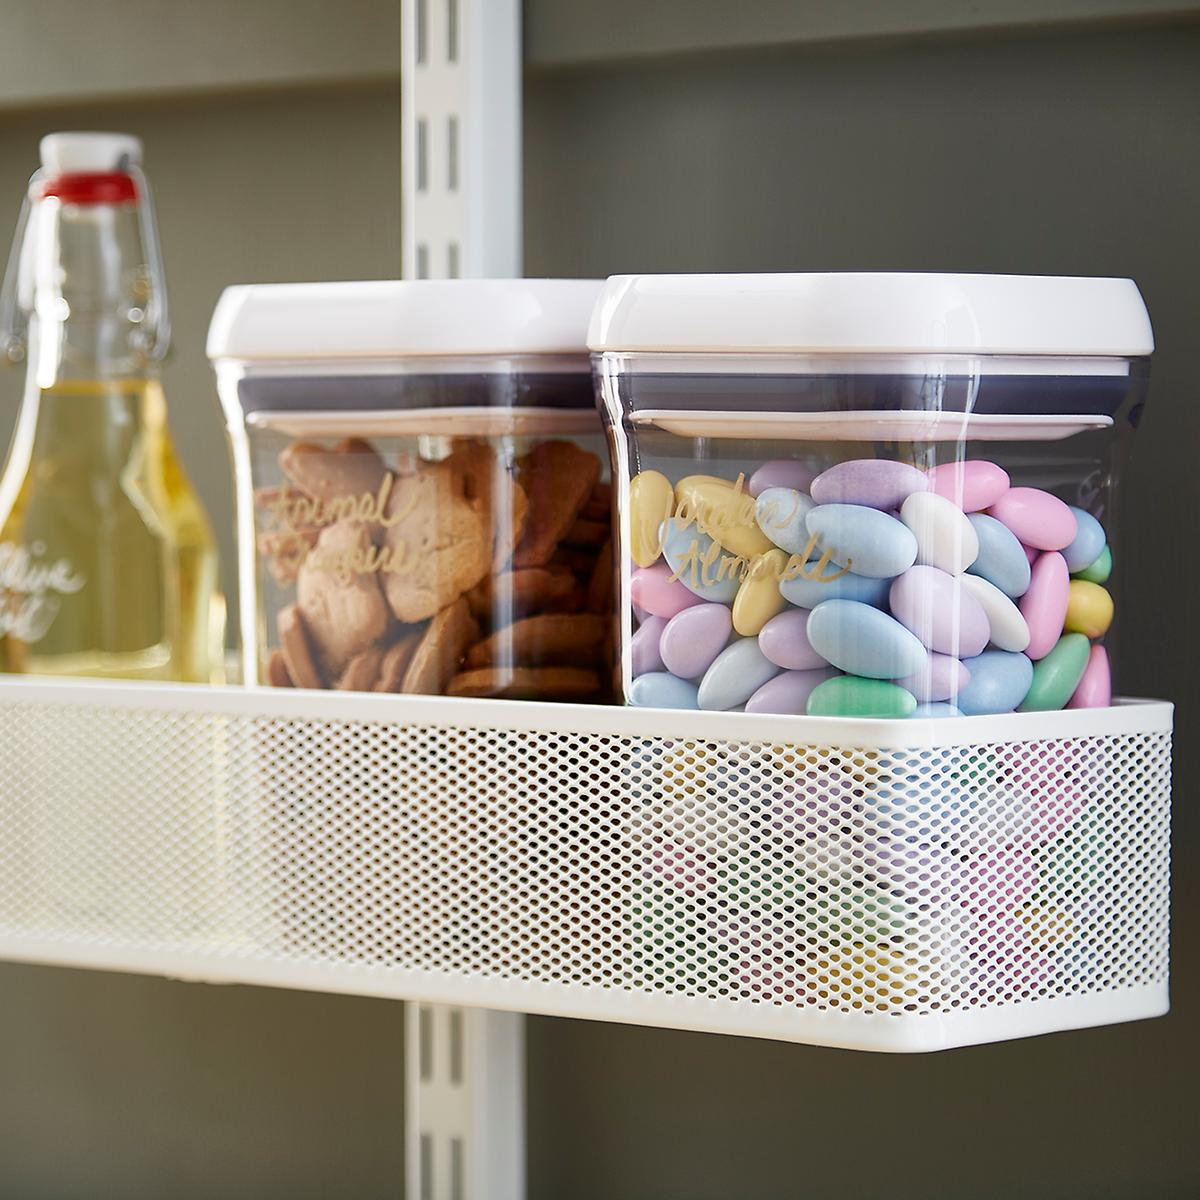 17 Best Images About Elfa Pantry On Pinterest: Elfa Utility White Mesh Pantry Door & Wall Rack